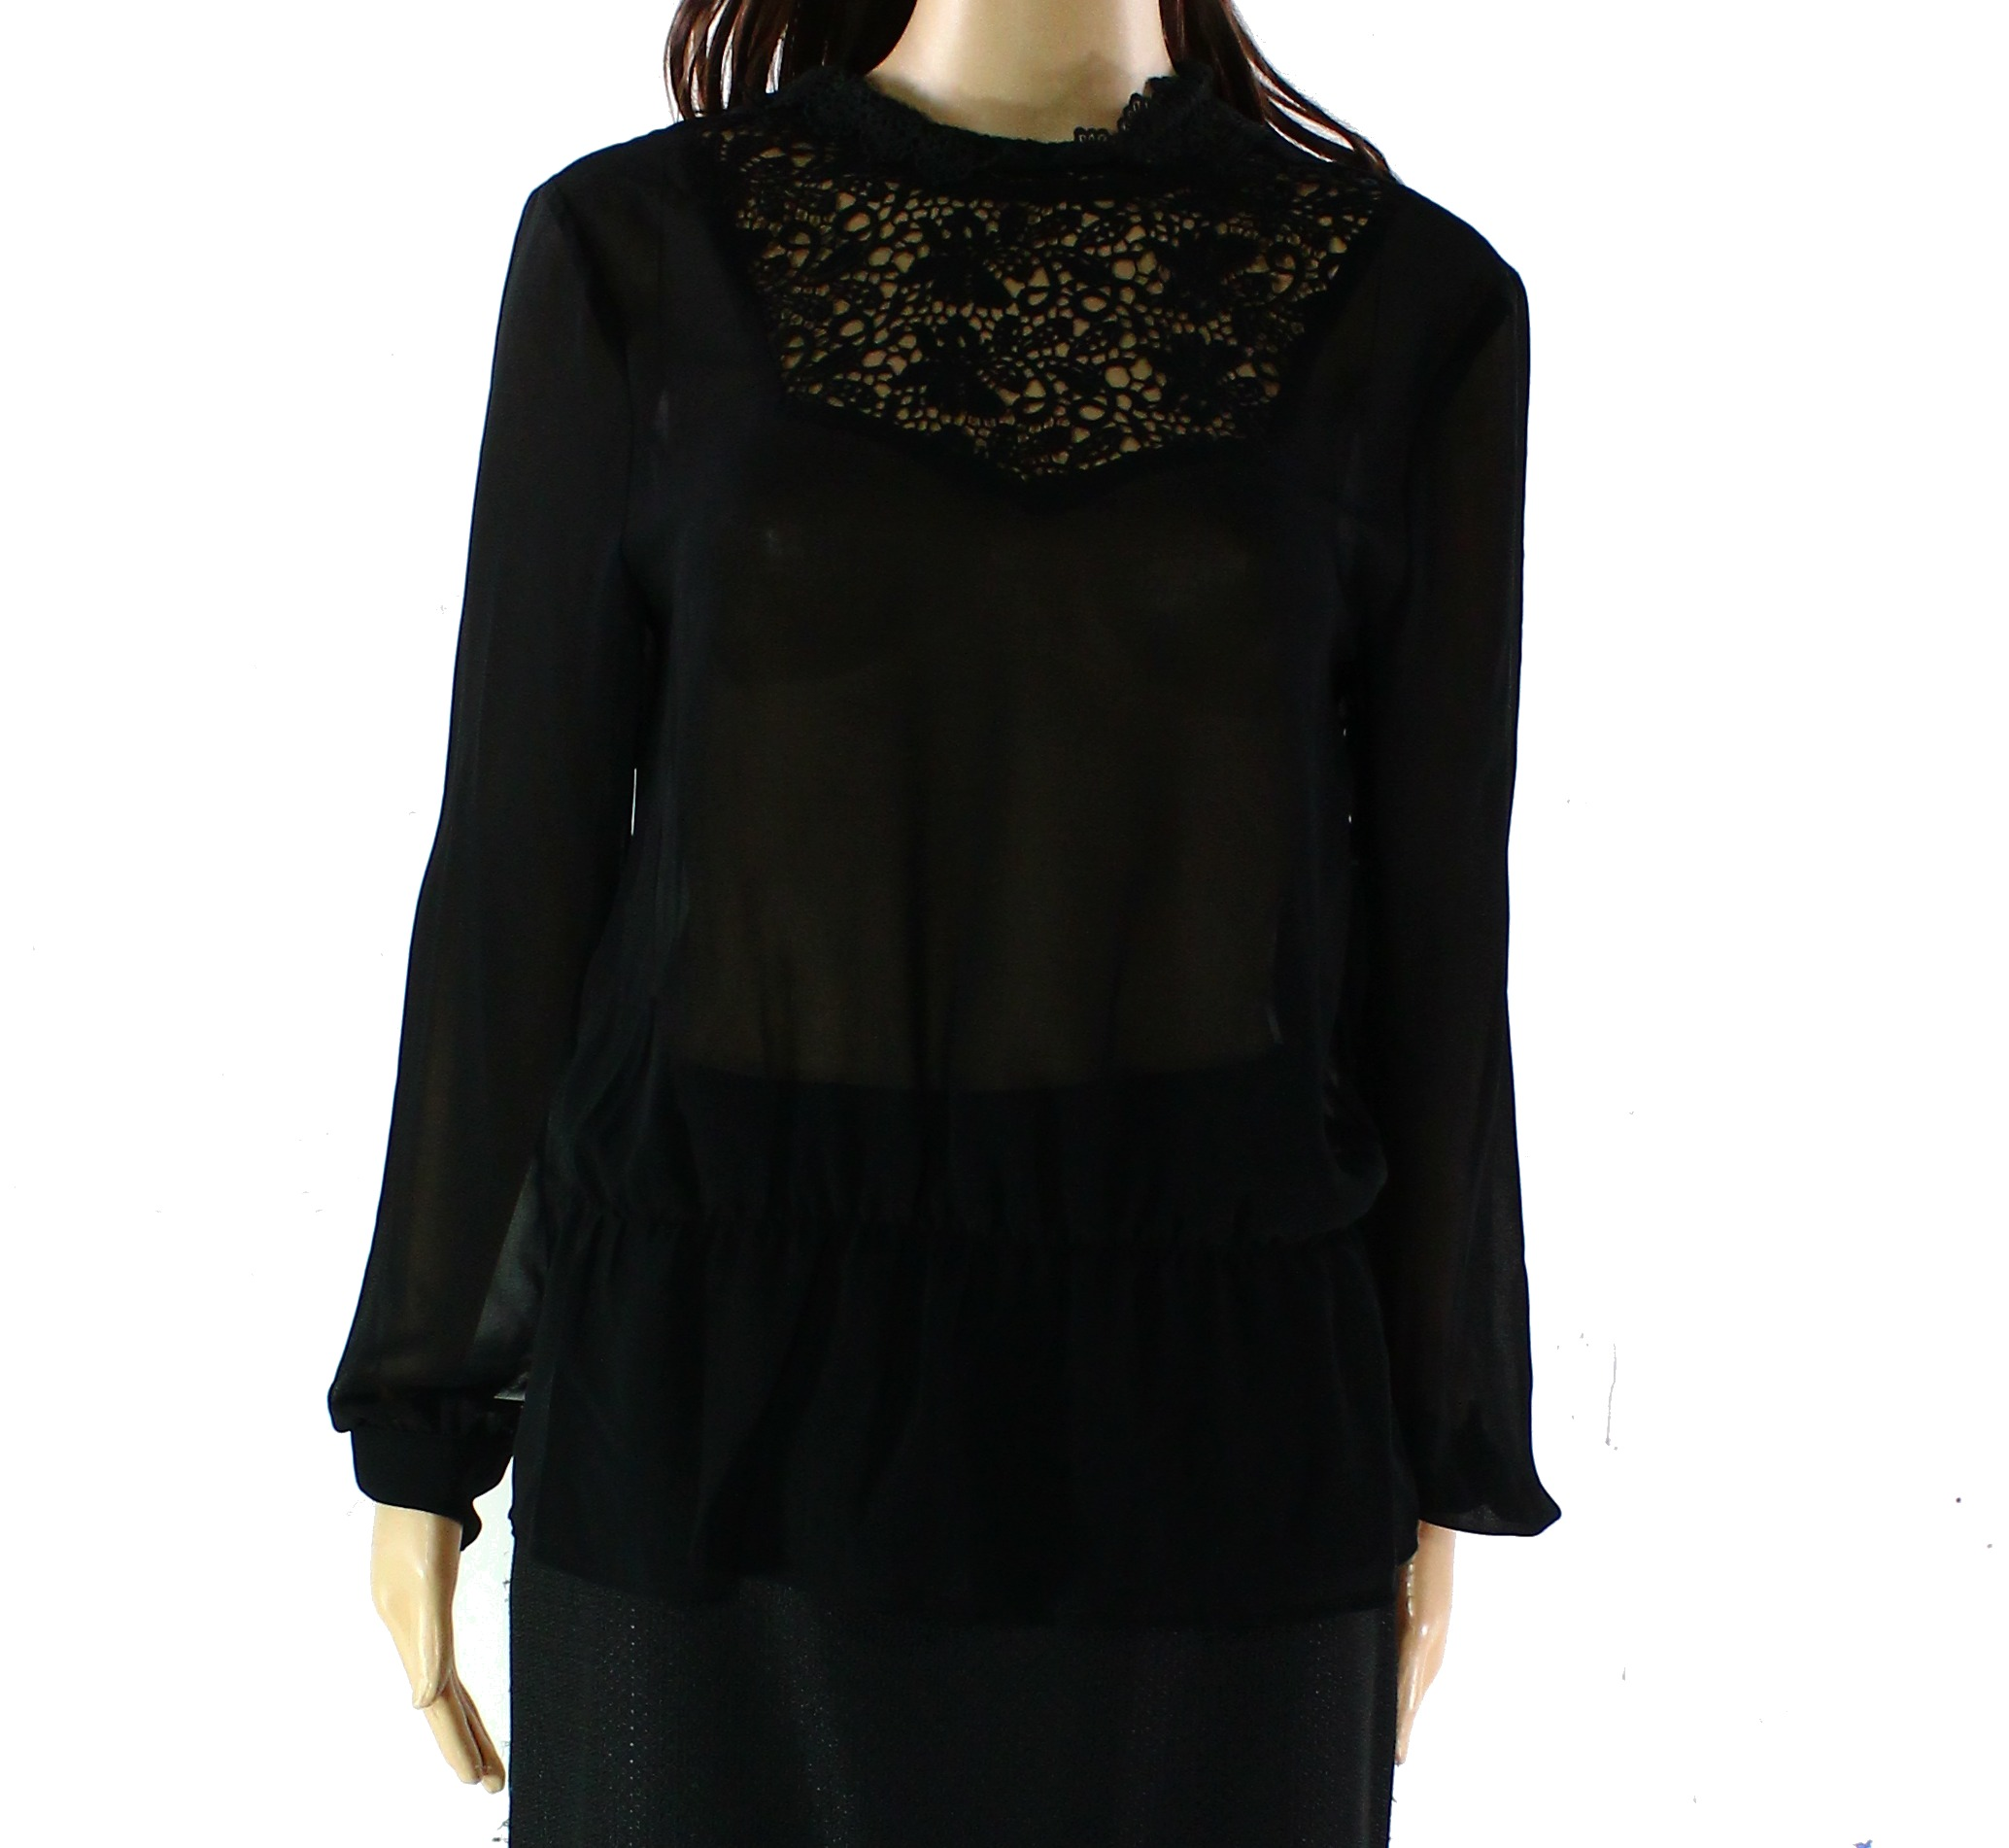 Hinge NEW Black Womens Size Small S Floral Crochet Detail Blouse Top